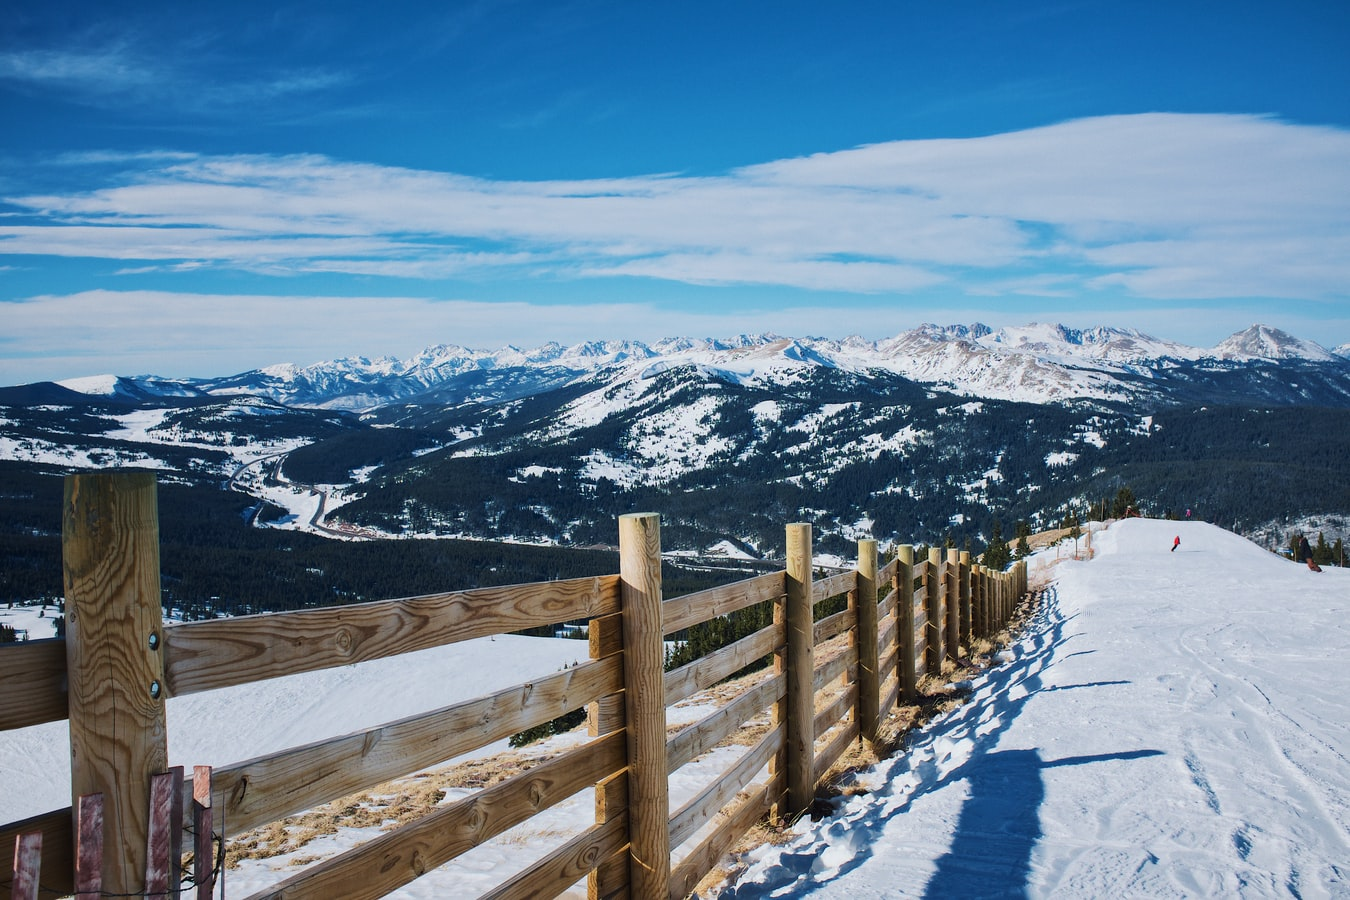 snow covered mountains and fence in Breckenridge, CO